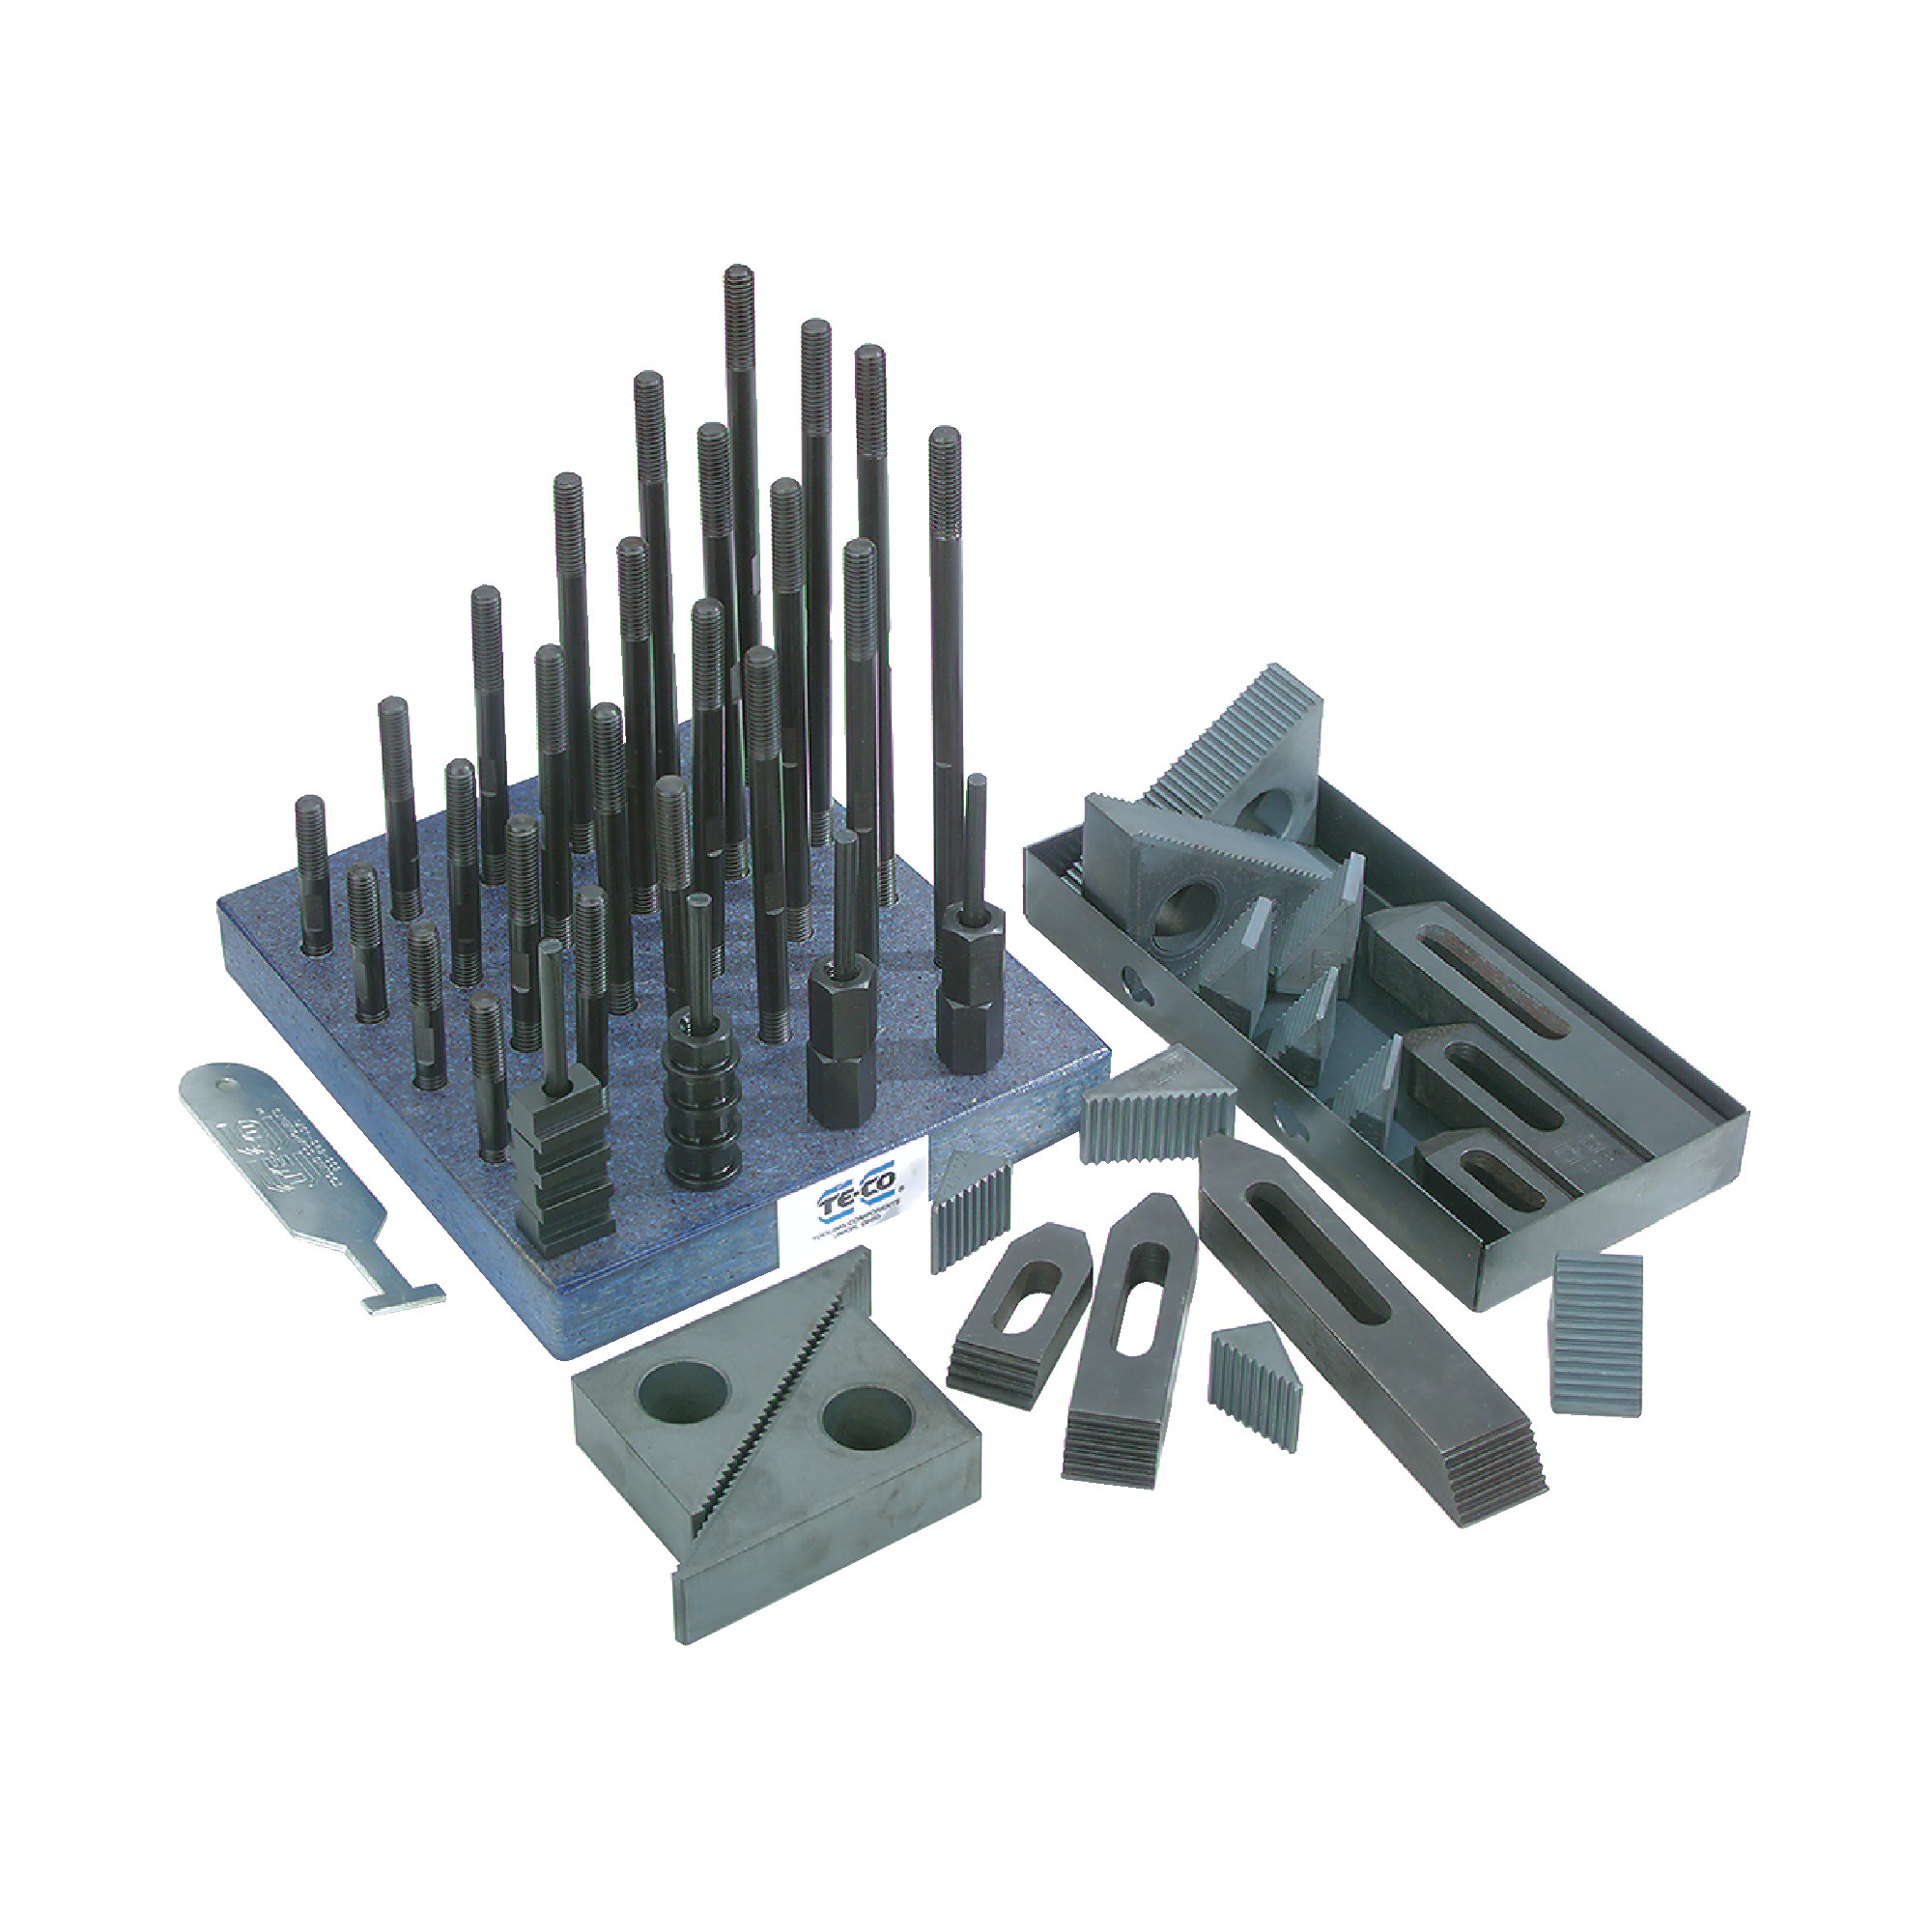 50 Piece Deluxe Clamping Set